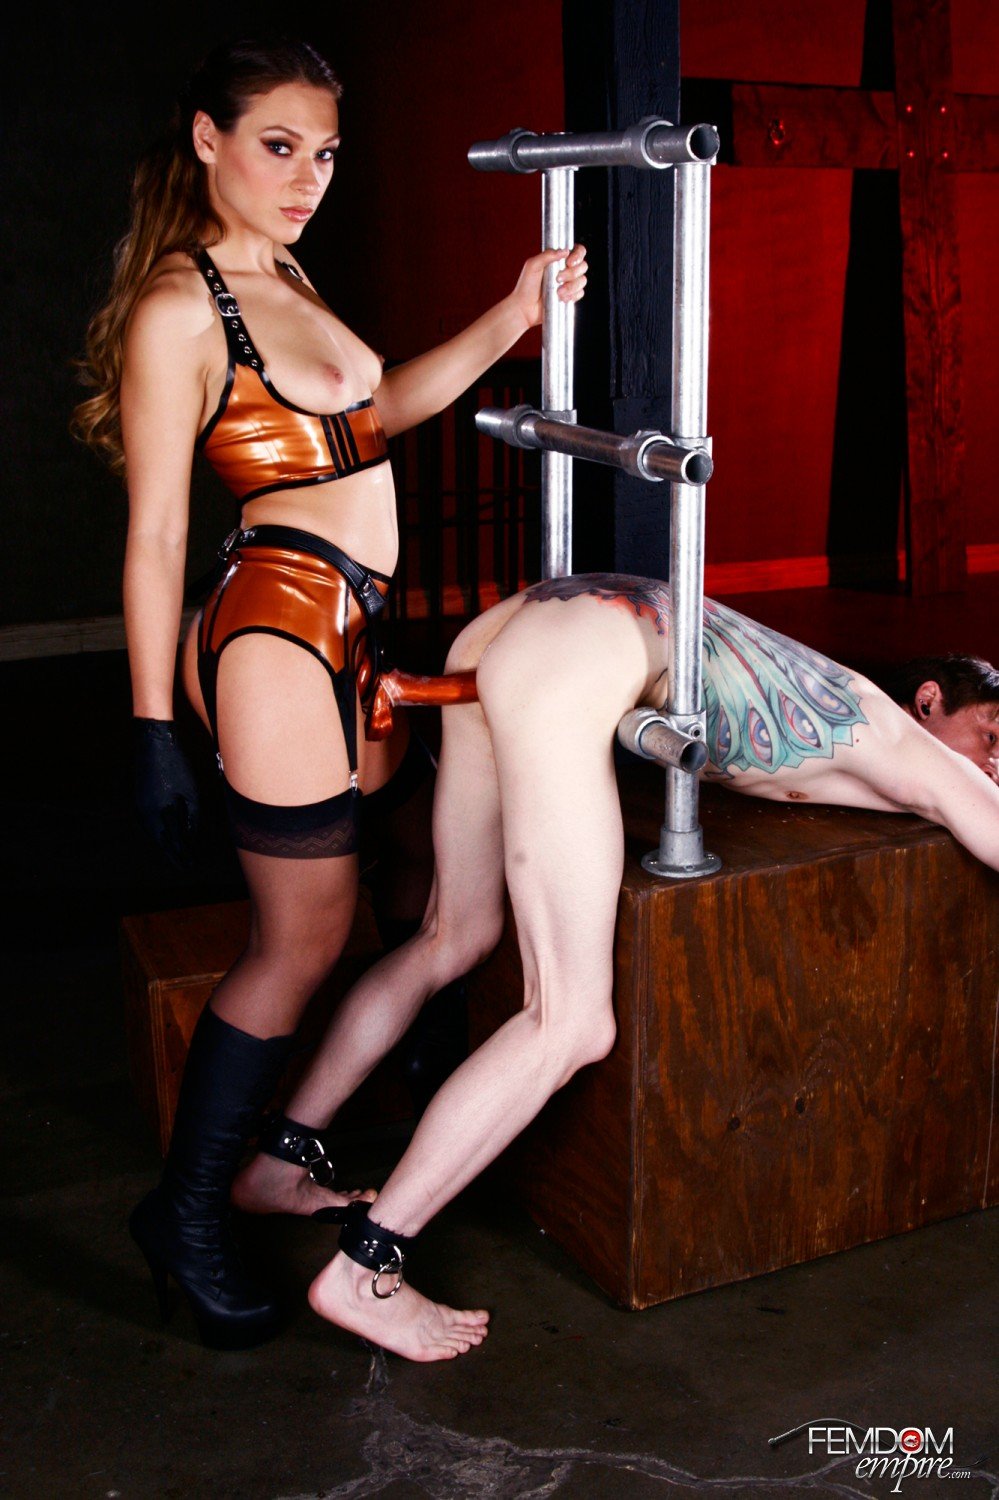 247 bdsm and mistress and her bisex slaves 1